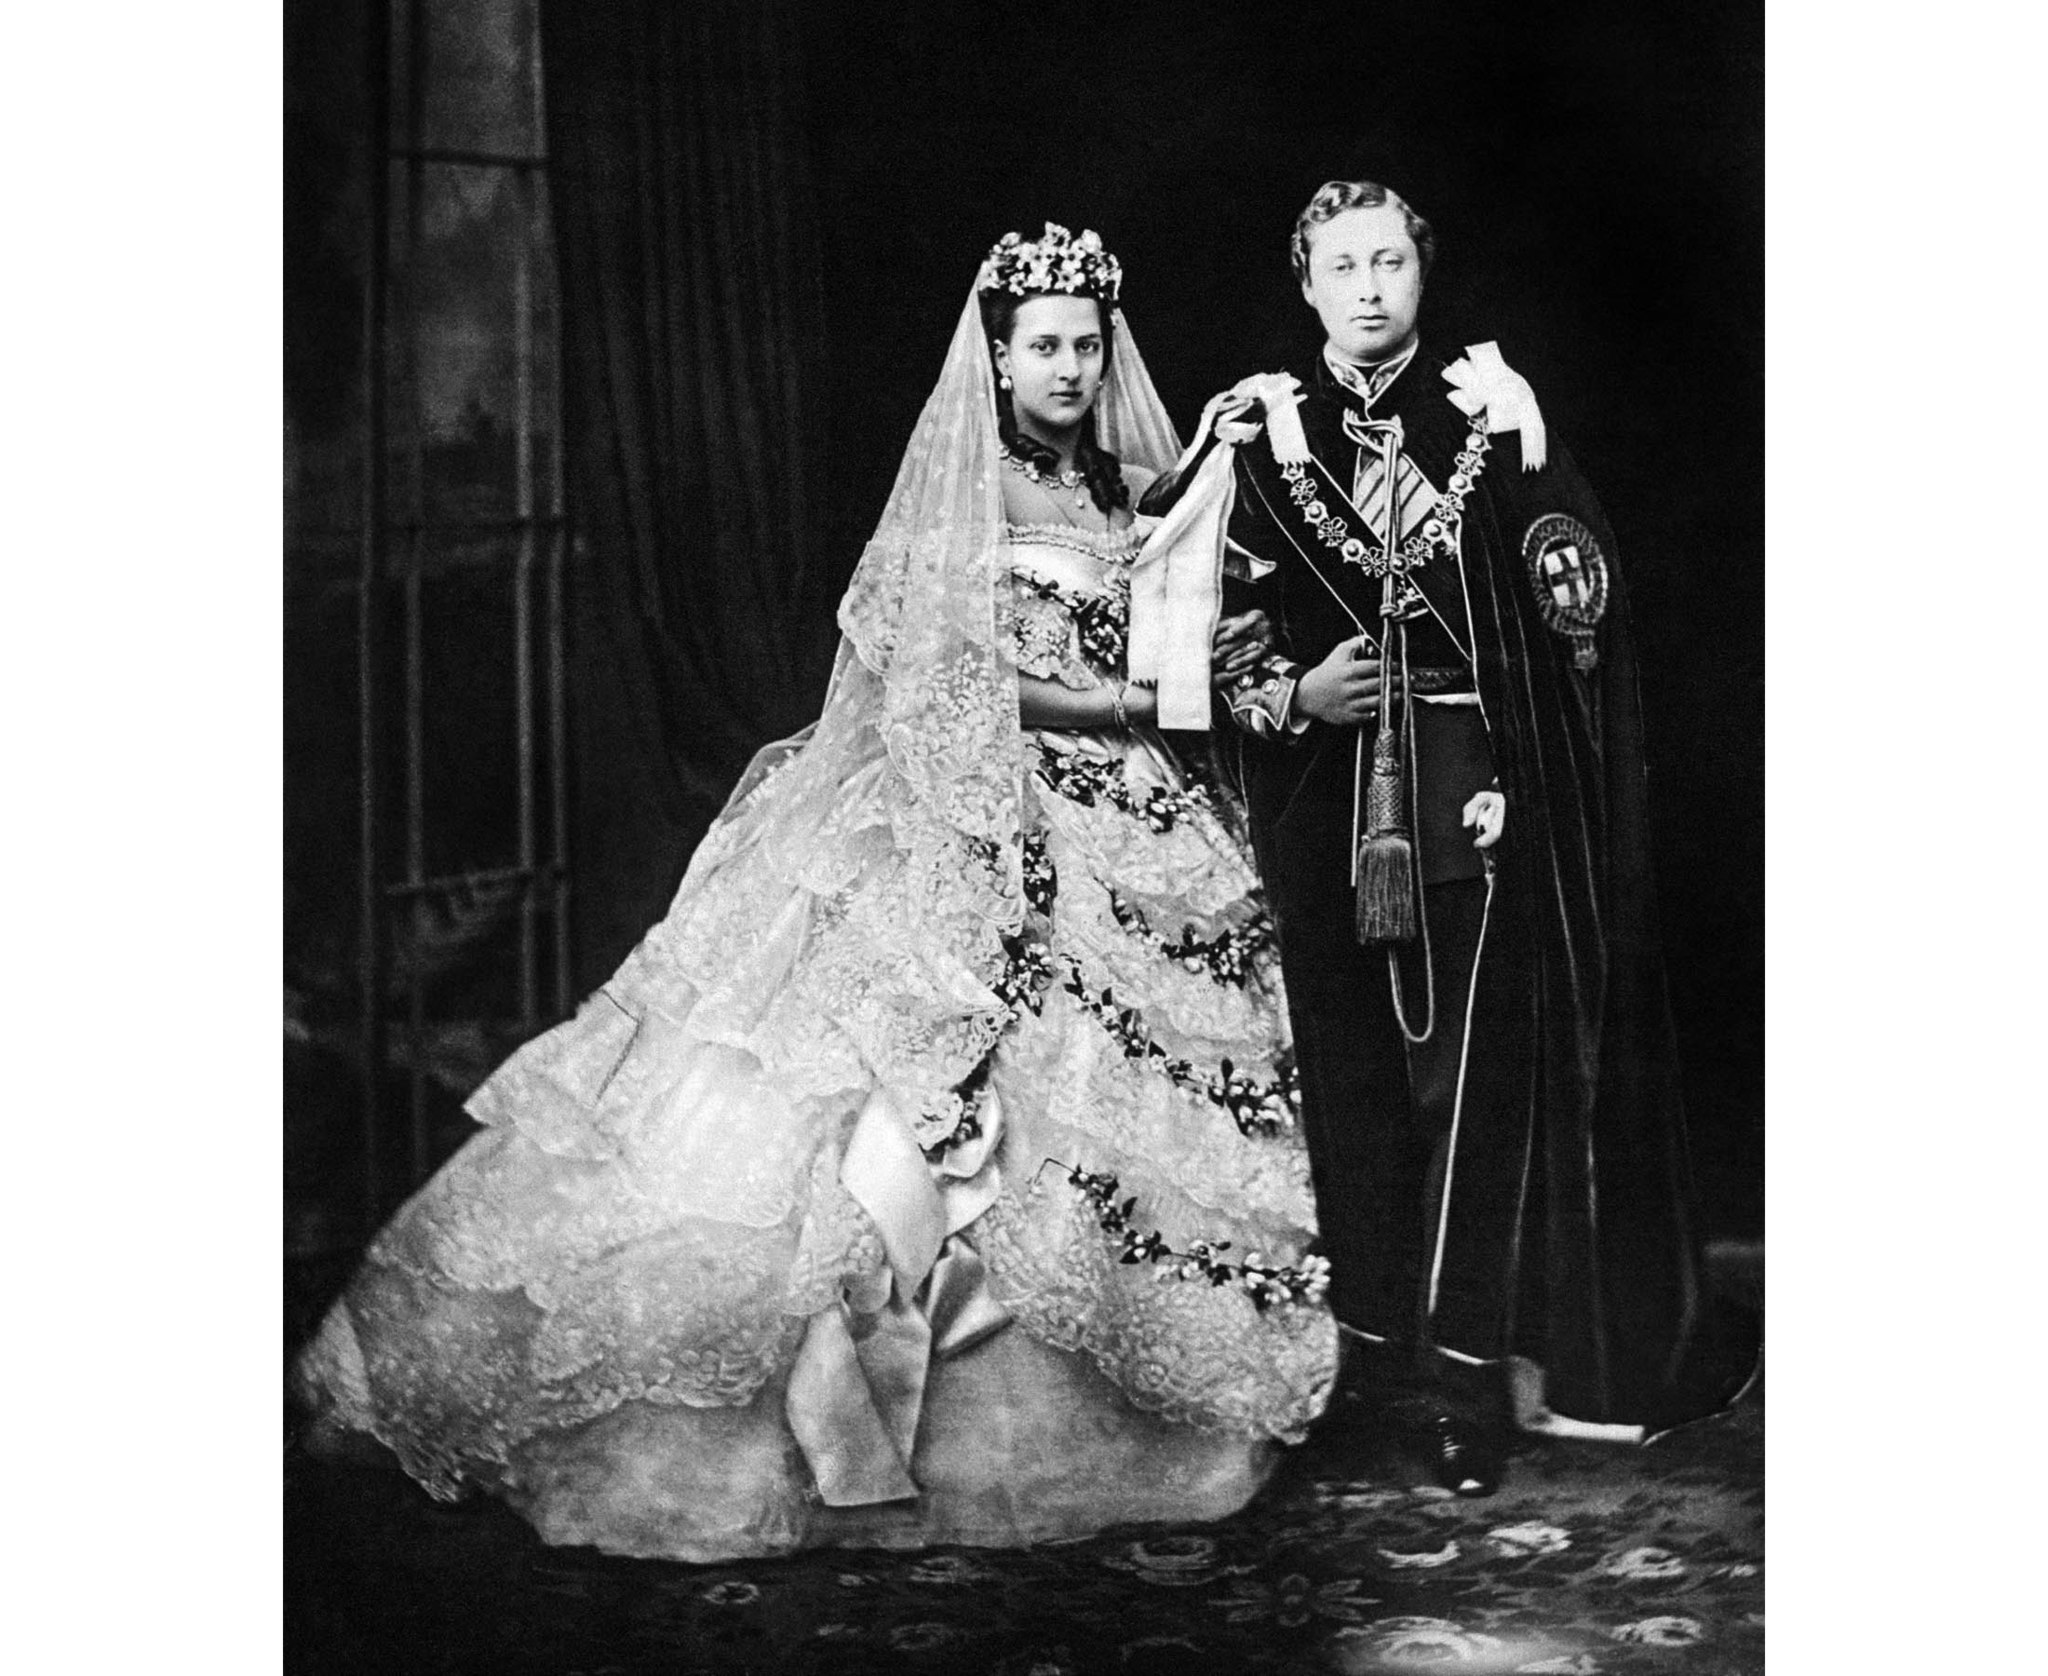 WEDDING OF PRINCE OF WALES AND PRINCESS ALEXANDRA : 1863